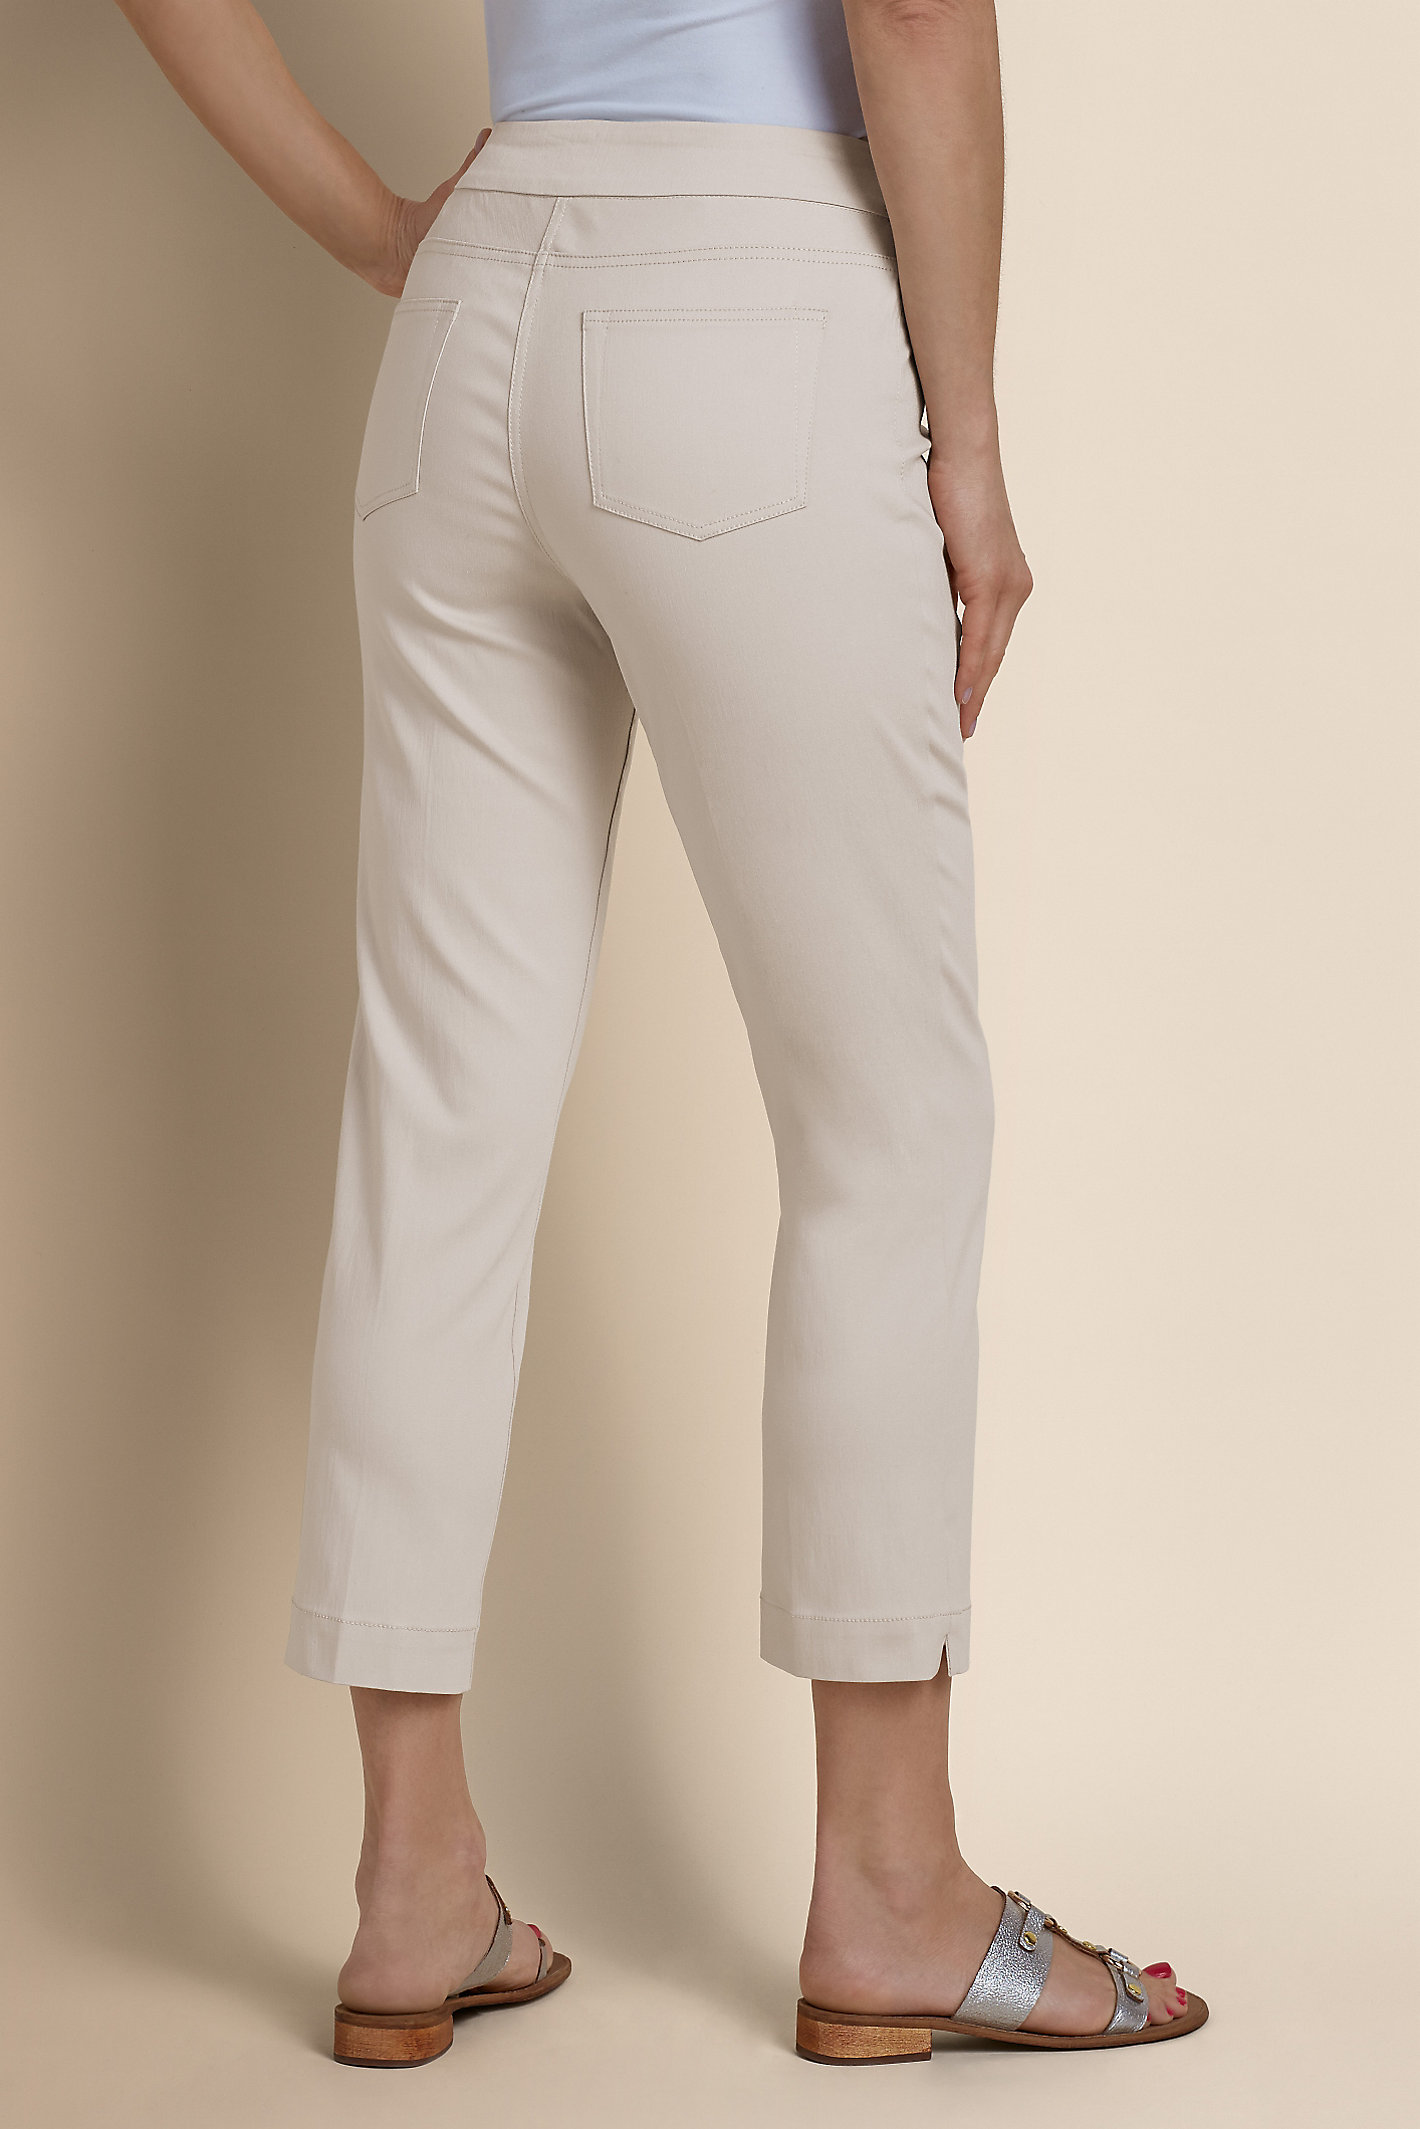 Petite Super Stretch Capri